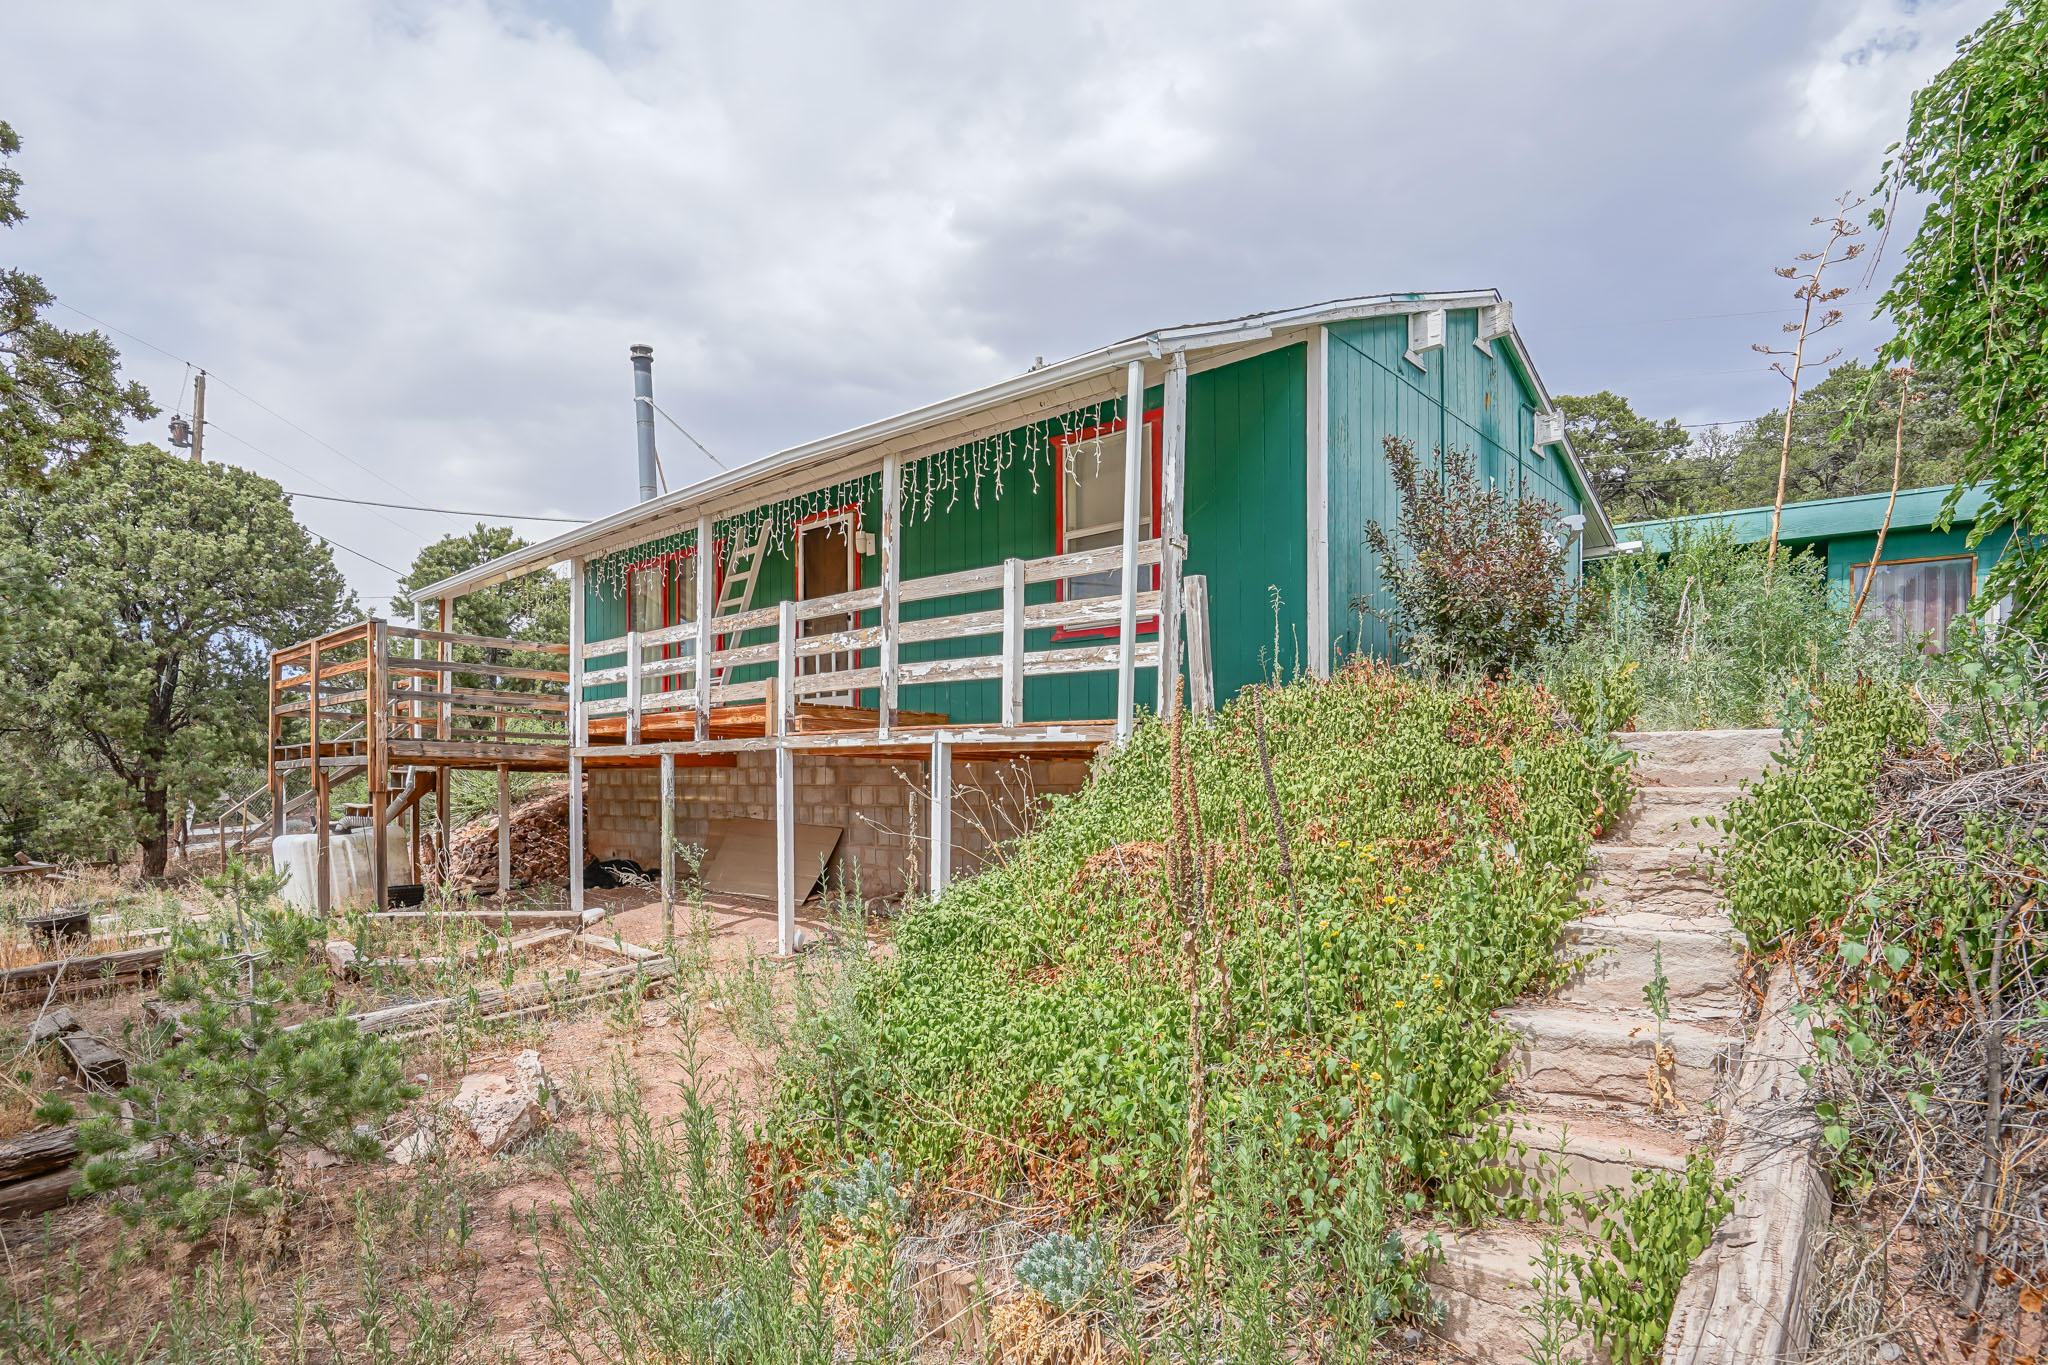 Come see this great home with 4 bedrooms and 2 bathrooms in the East Mountains with the most amazing views.